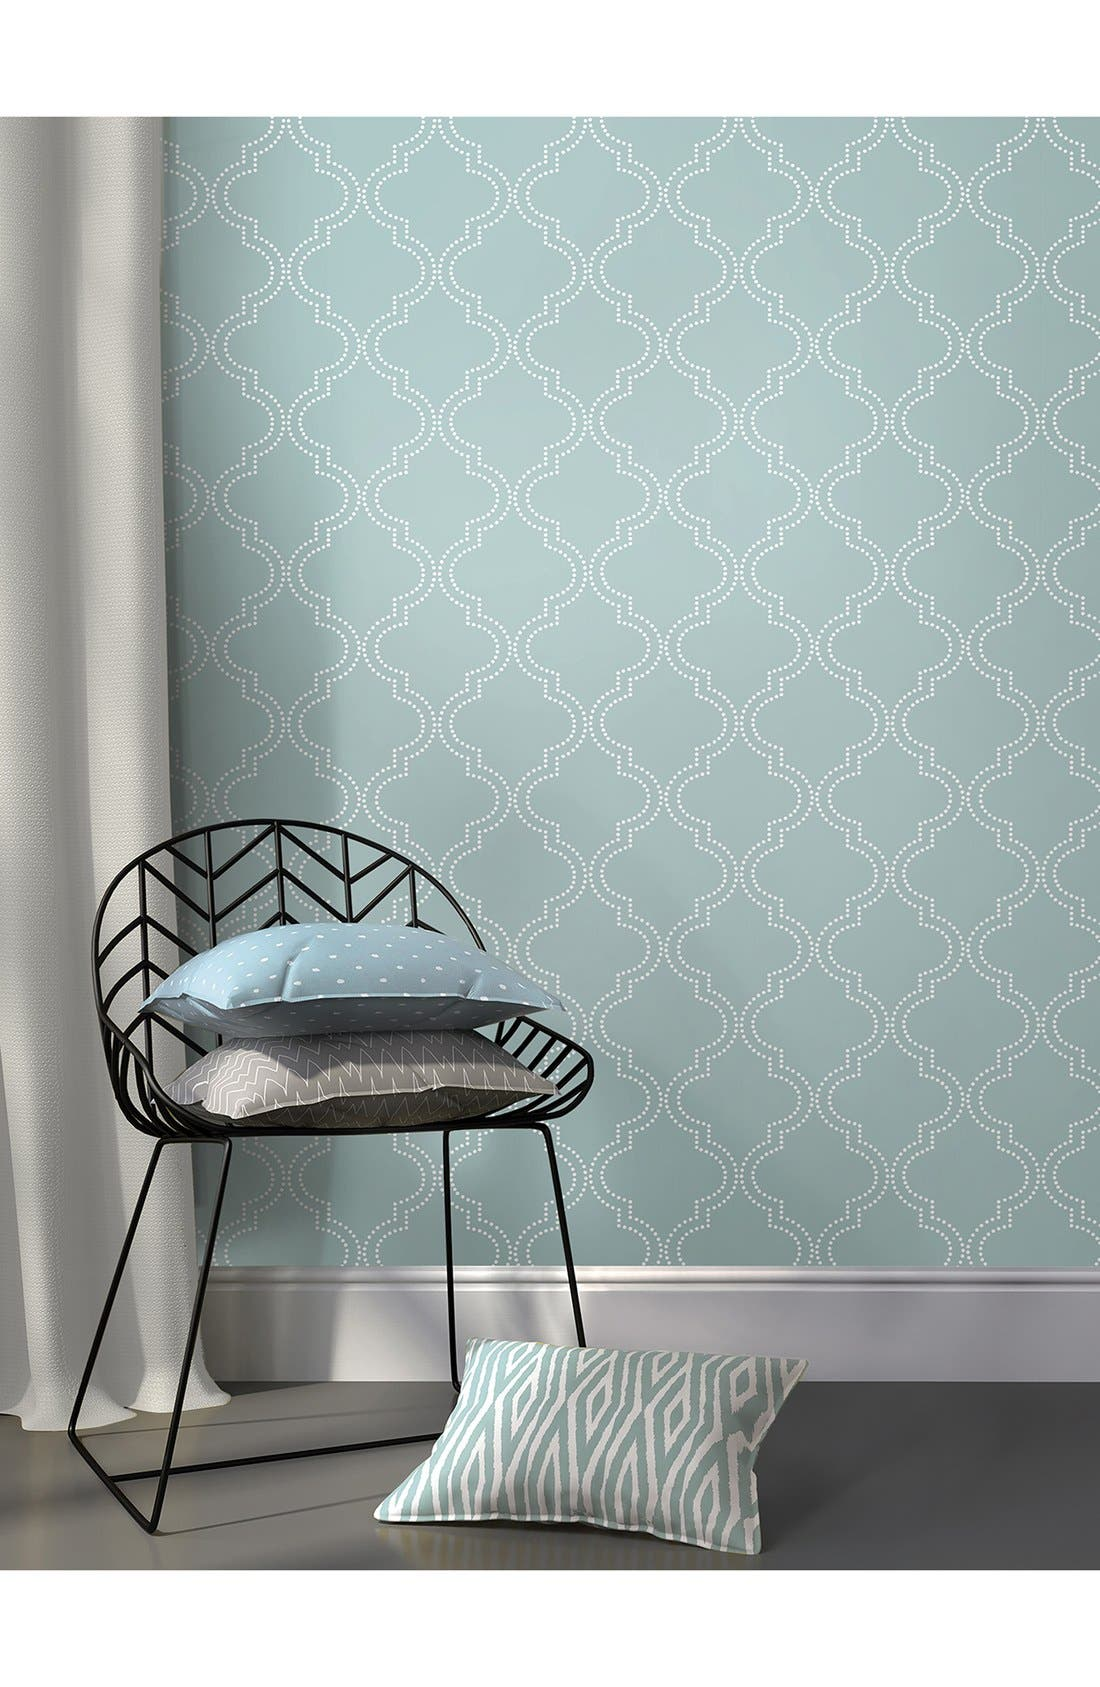 'Quatrefoil'  Peel & Stick Vinyl Wallpaper,                             Alternate thumbnail 2, color,                             401